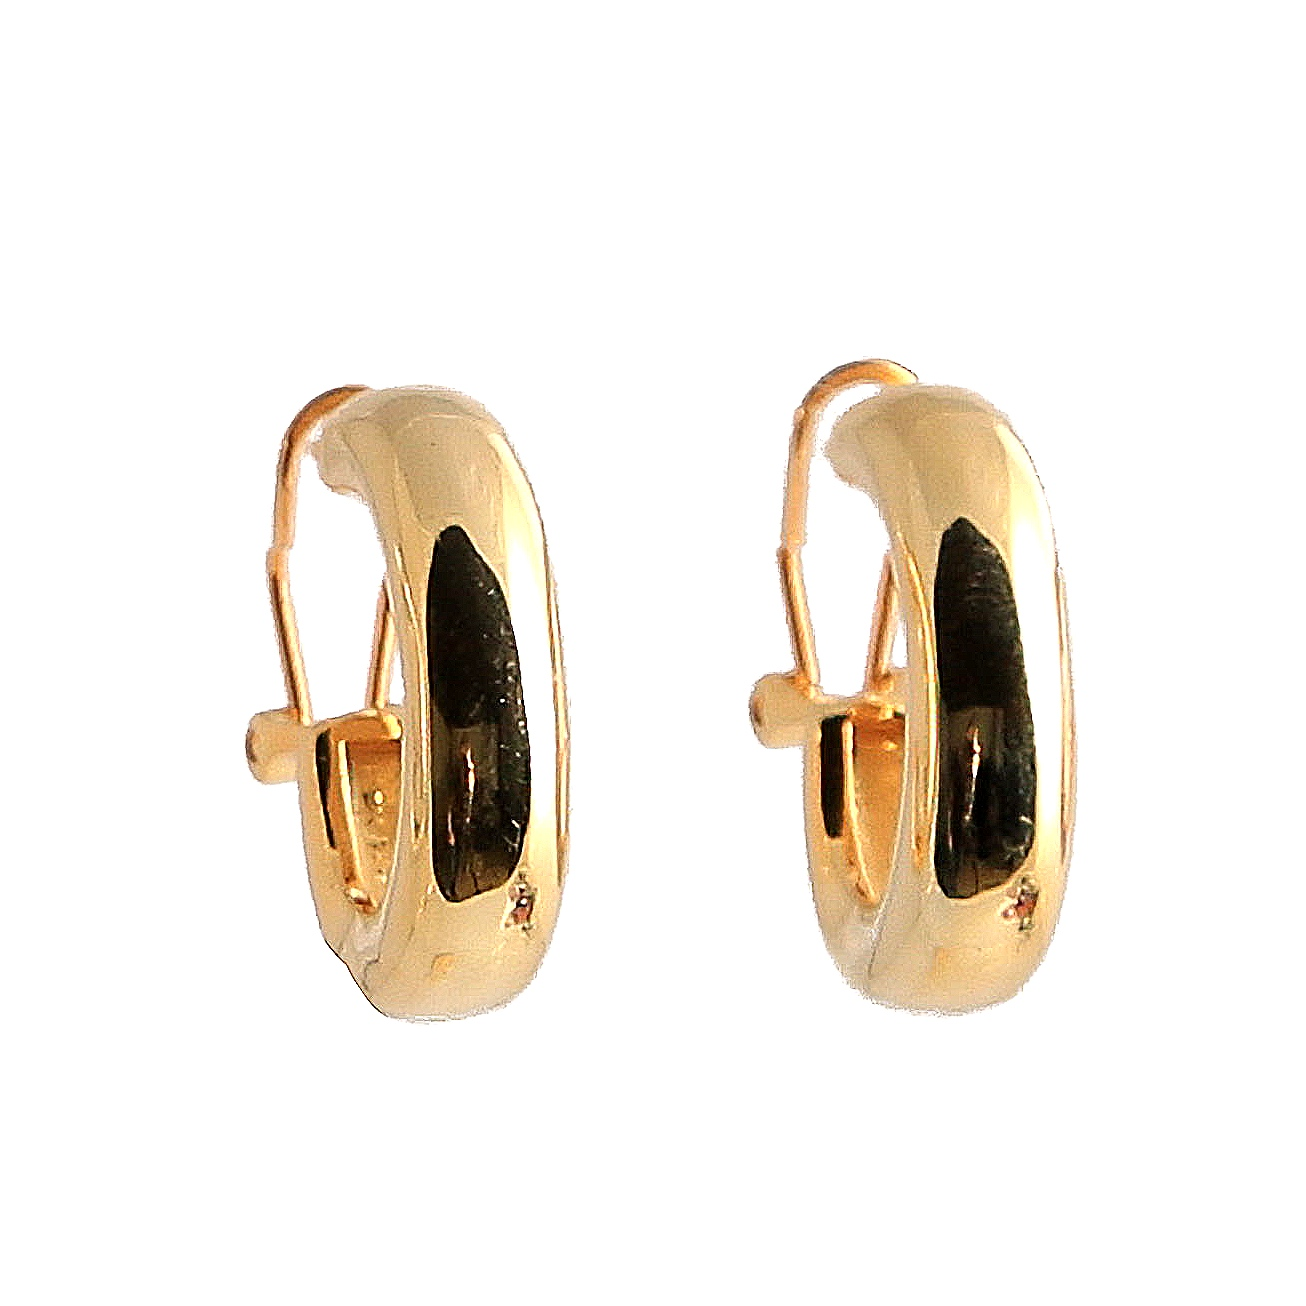 Bauer Basics - Ear Rings Gold Large